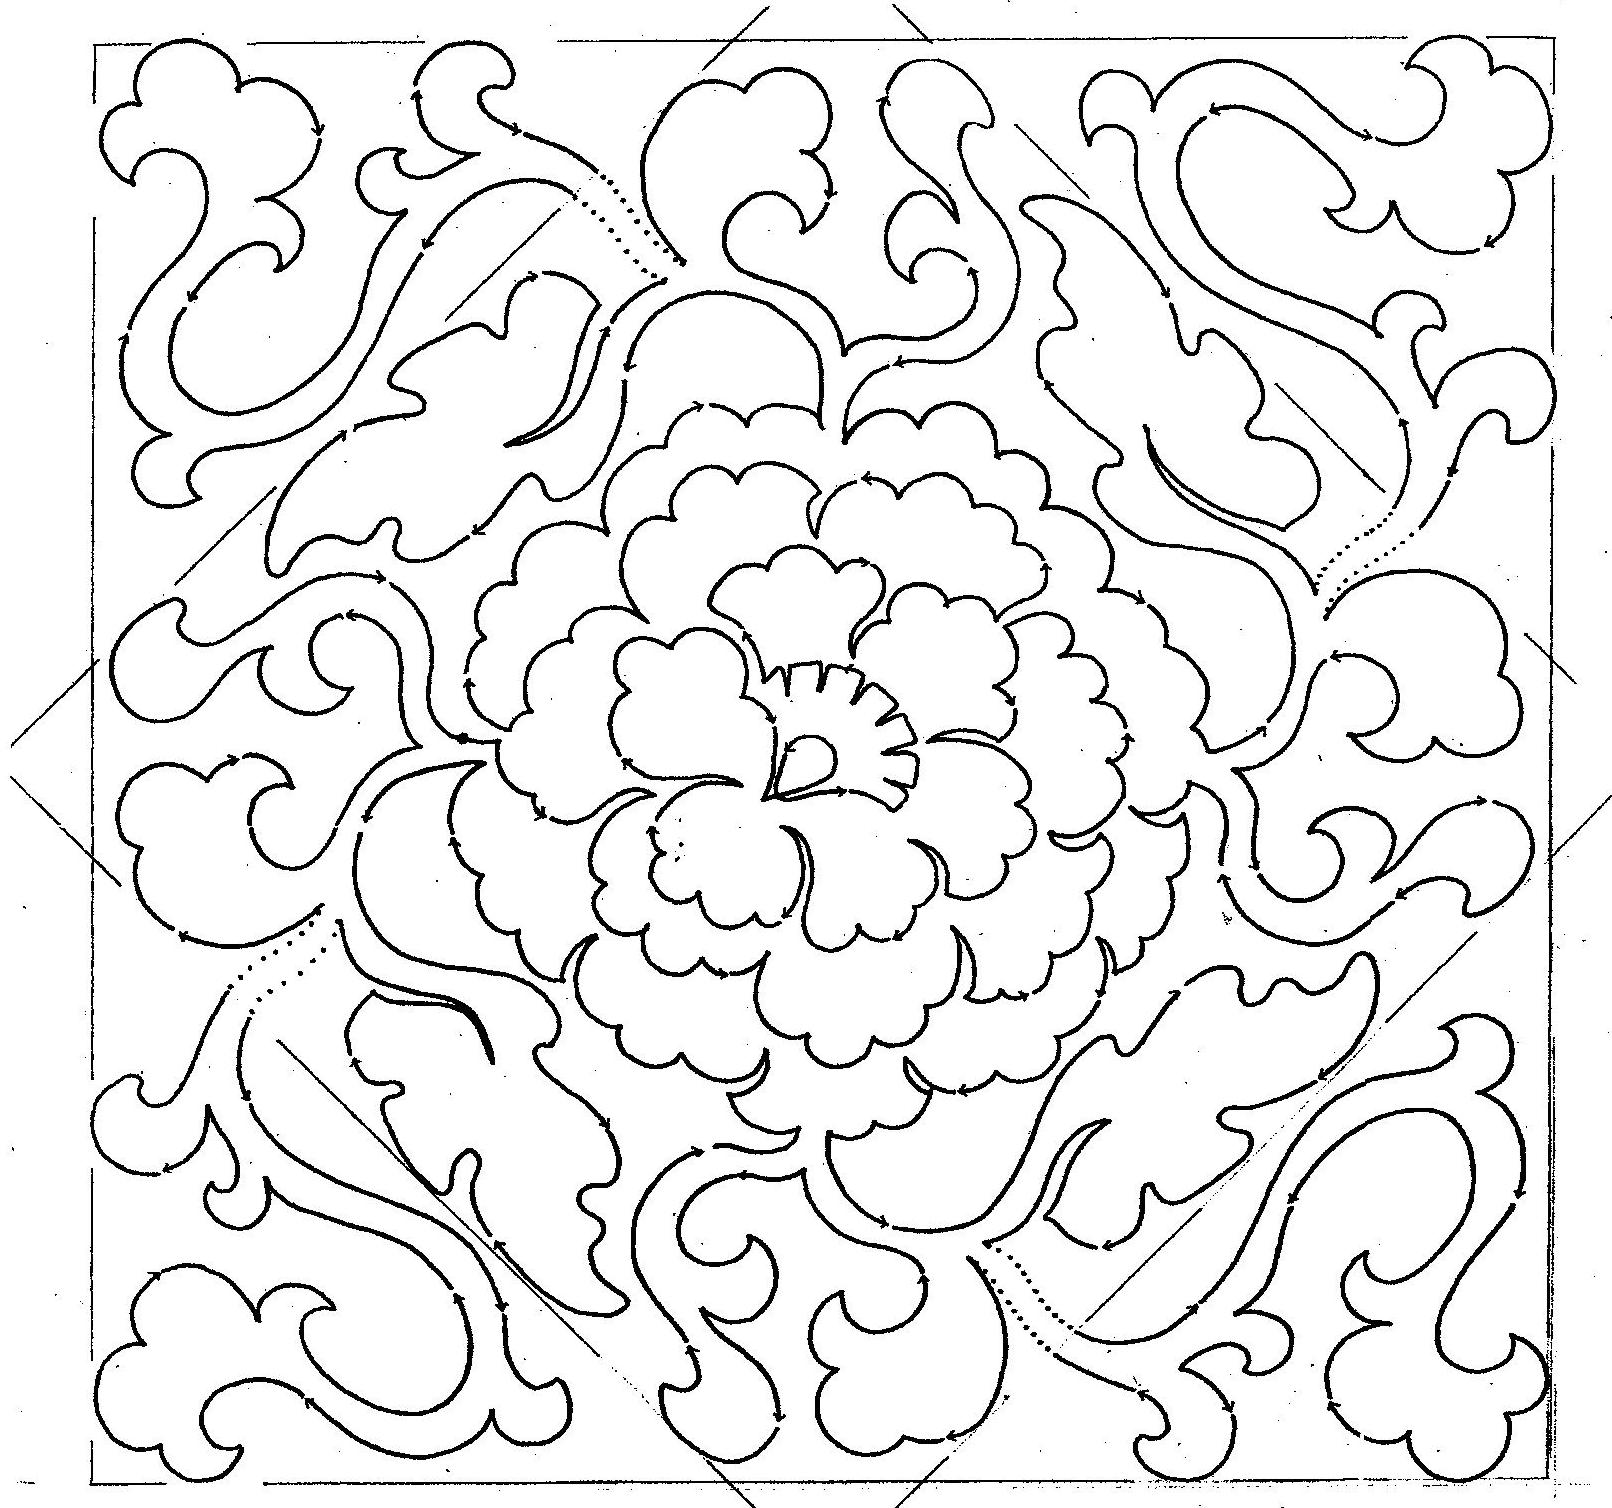 Valentine Hearts Coloring Pages Free as well Chinese Embroidery Designs furthermore University Of Georgia Arches Logo Graphghan Pattern together with Halloween in addition . on elvis presley symbols